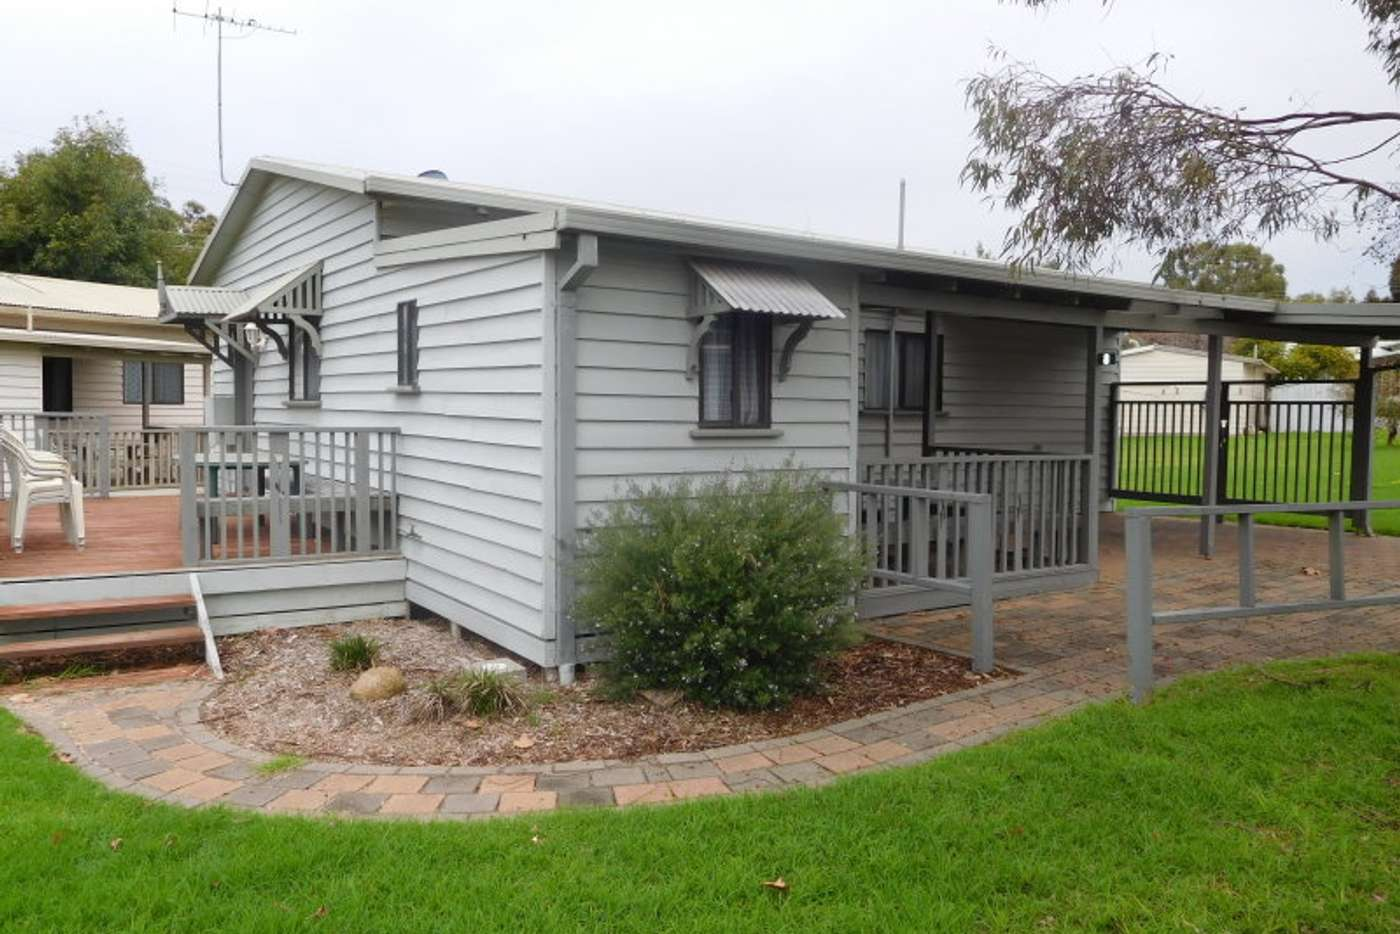 Main view of Homely villa listing, 8 Spotted Gum Drive, Albury NSW 2640